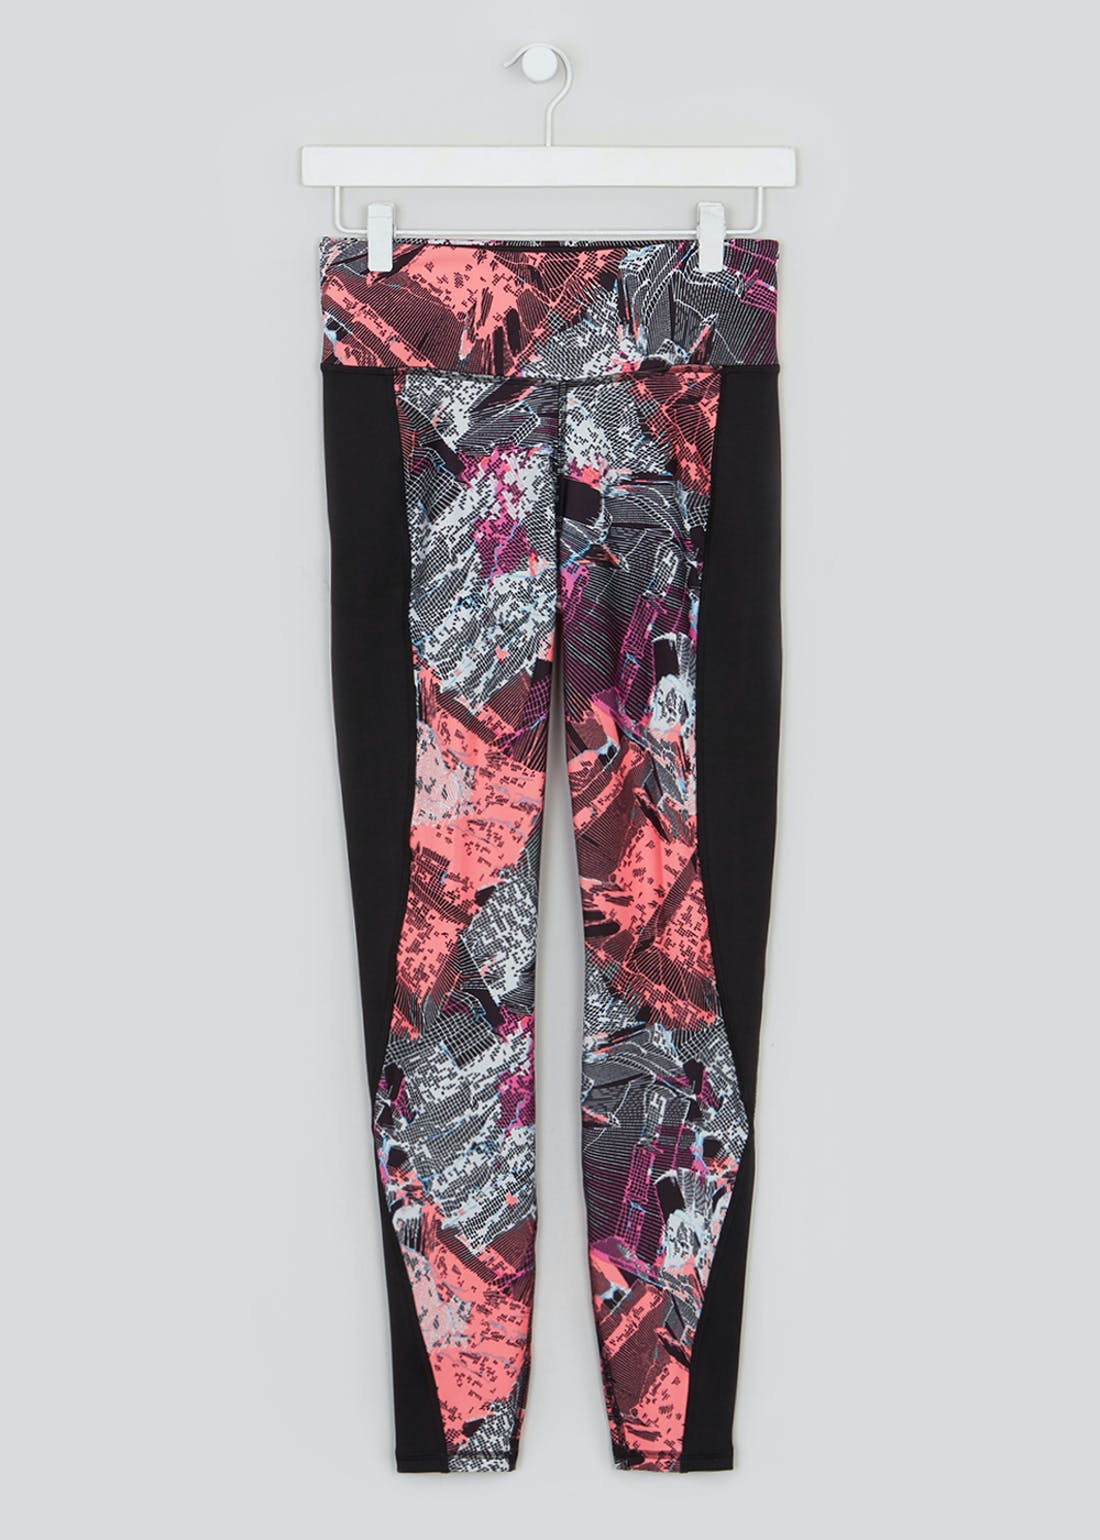 Souluxe Glitch Print Gym Leggings